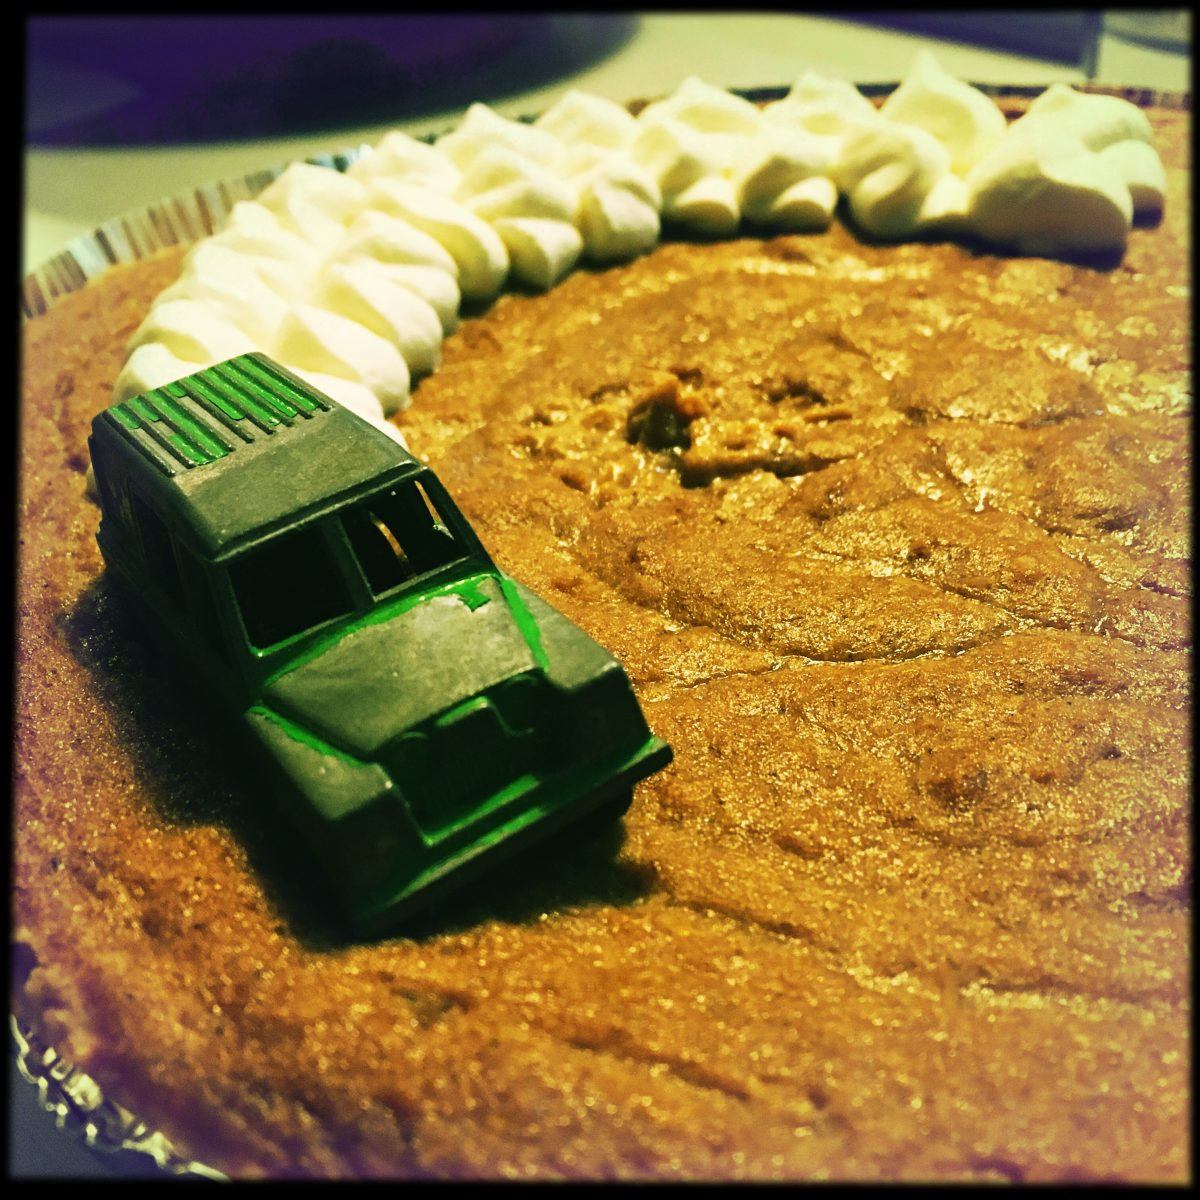 a photo of a pumpkin pie with a small toy car fishtailing across it, leaving a trail of whipped cream smoke in its wake